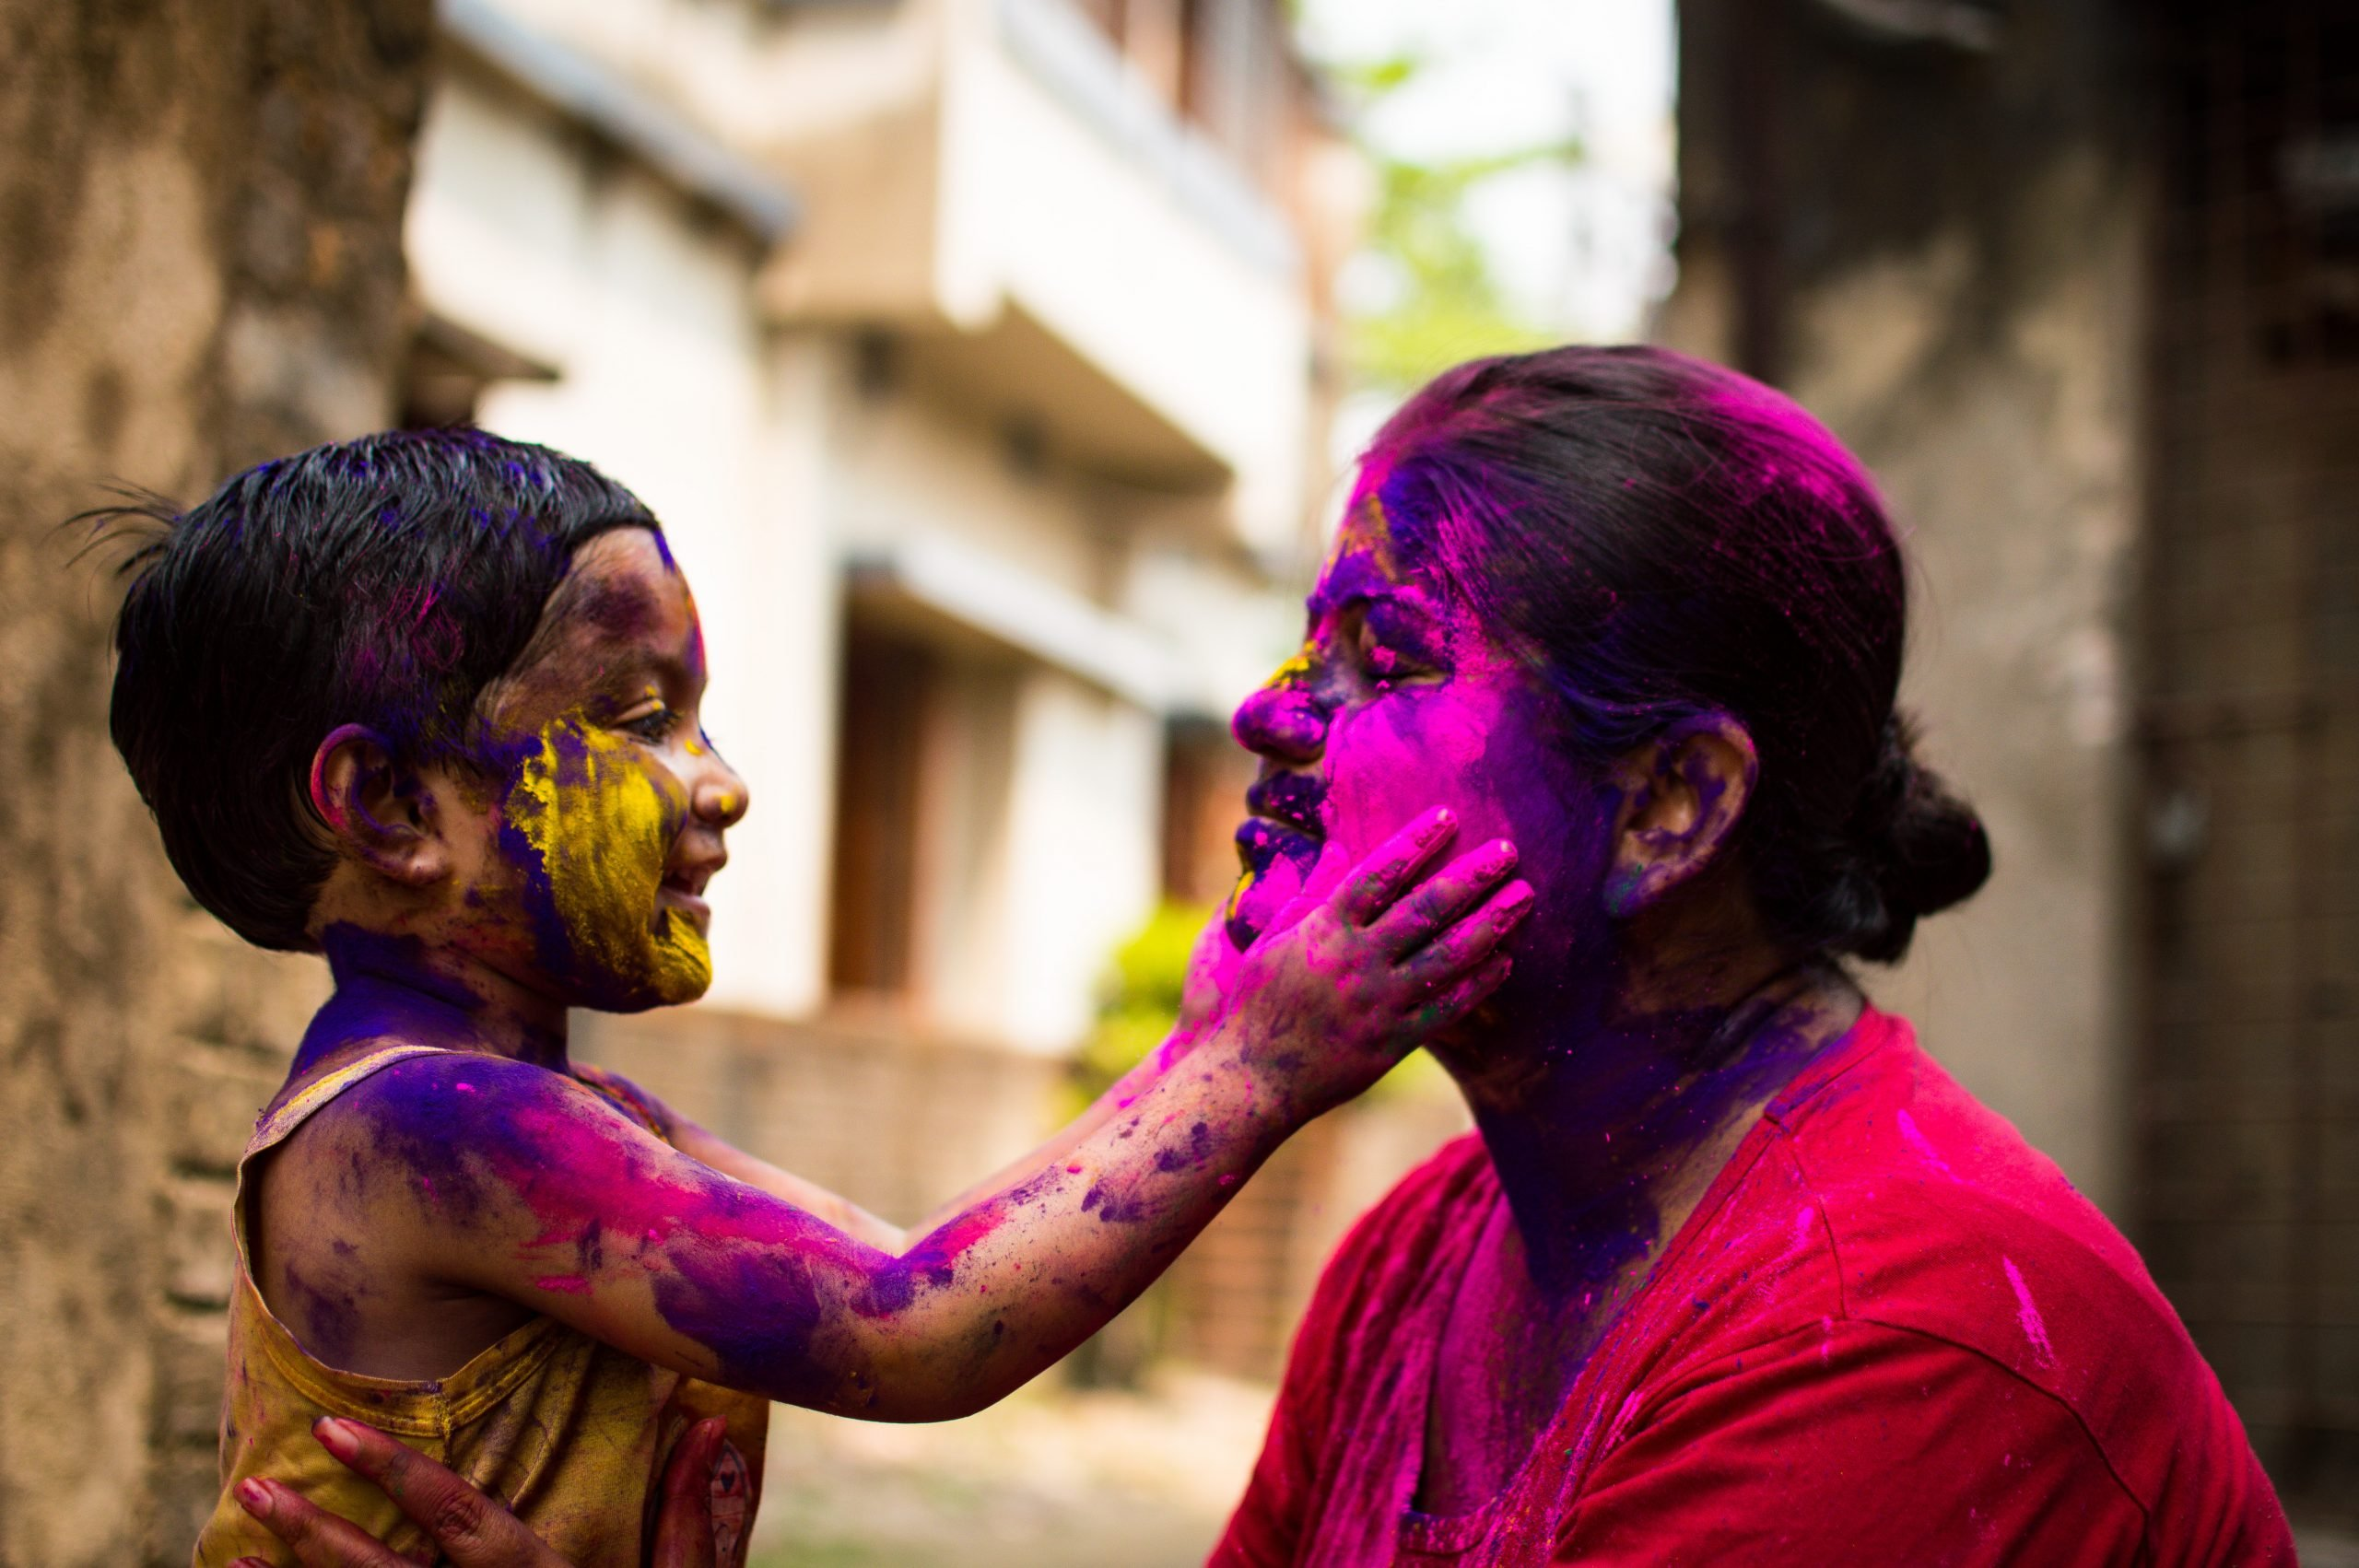 A woman celebrating Holi with her child